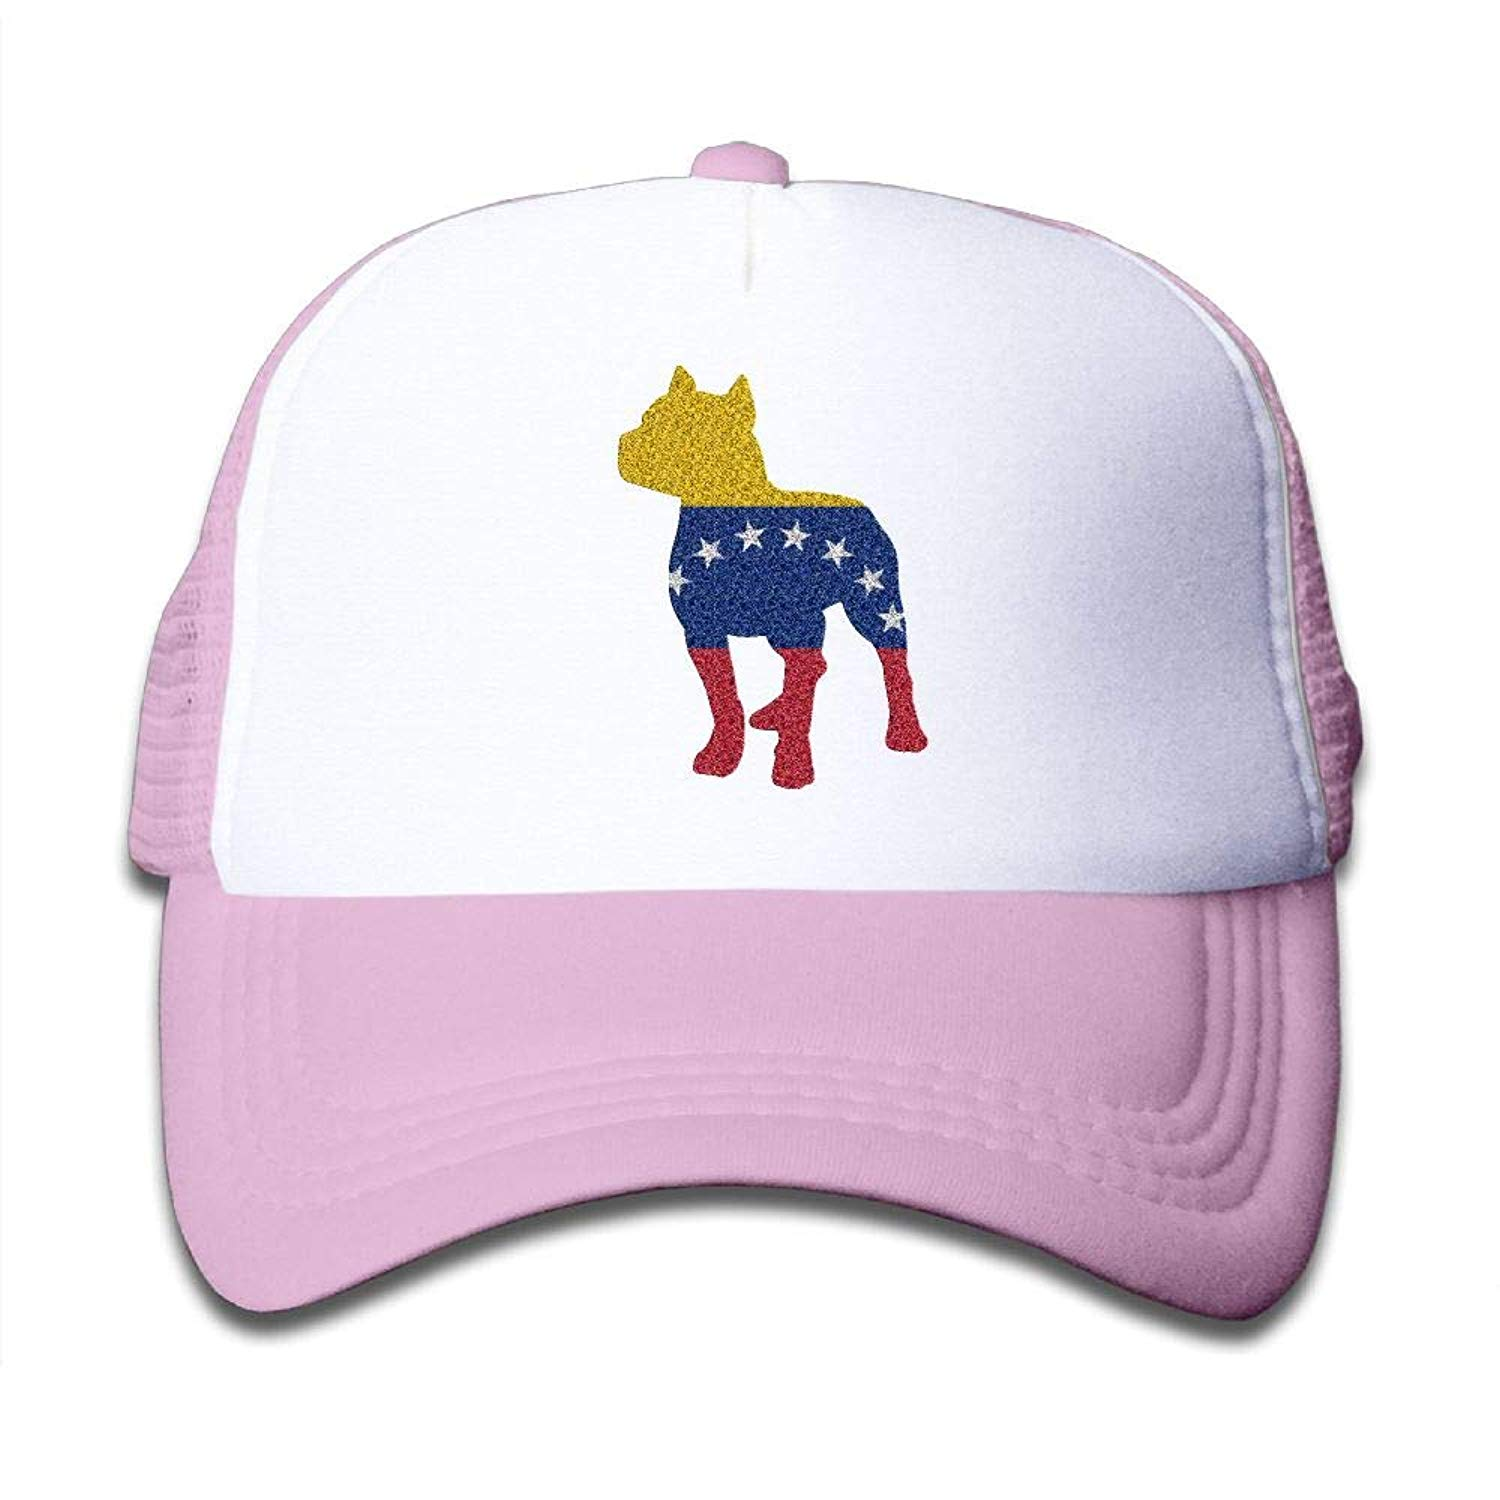 aae8d9bffe90c Get Quotations · Patriotic Pitbull Venezuela Flag On Boys and Girls Trucker  Hat